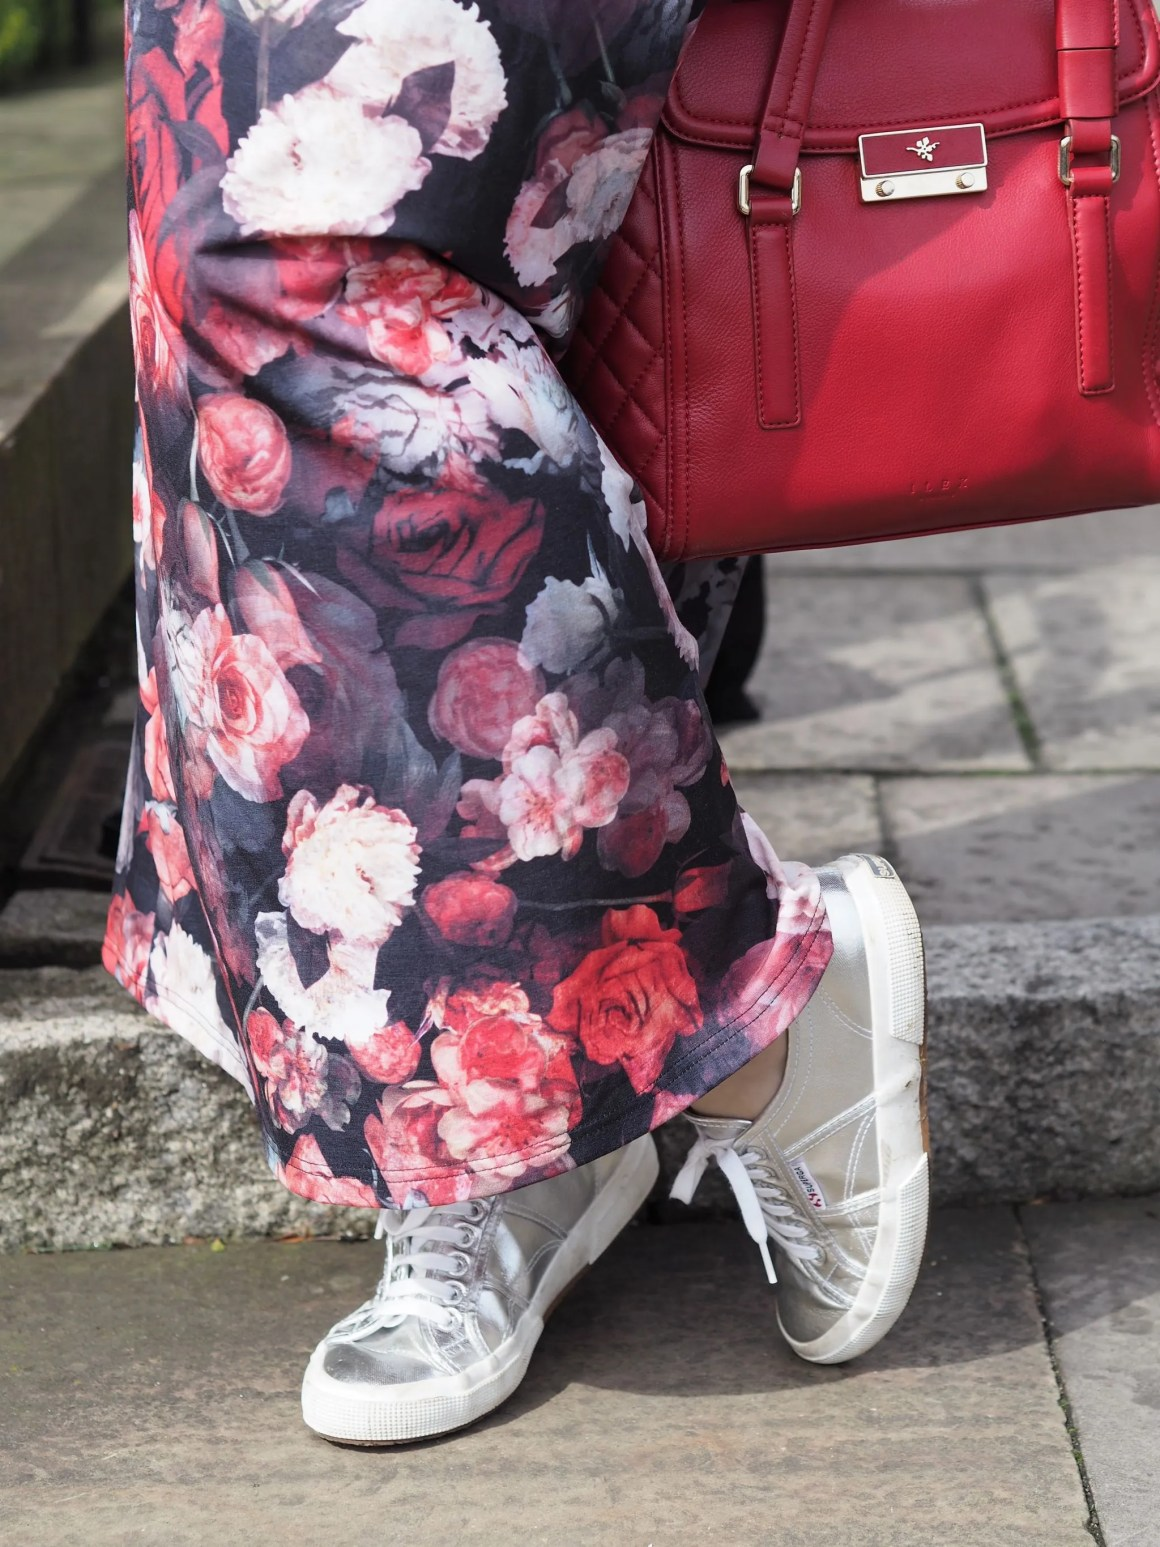 floral maxi dress silver sneakers red bag